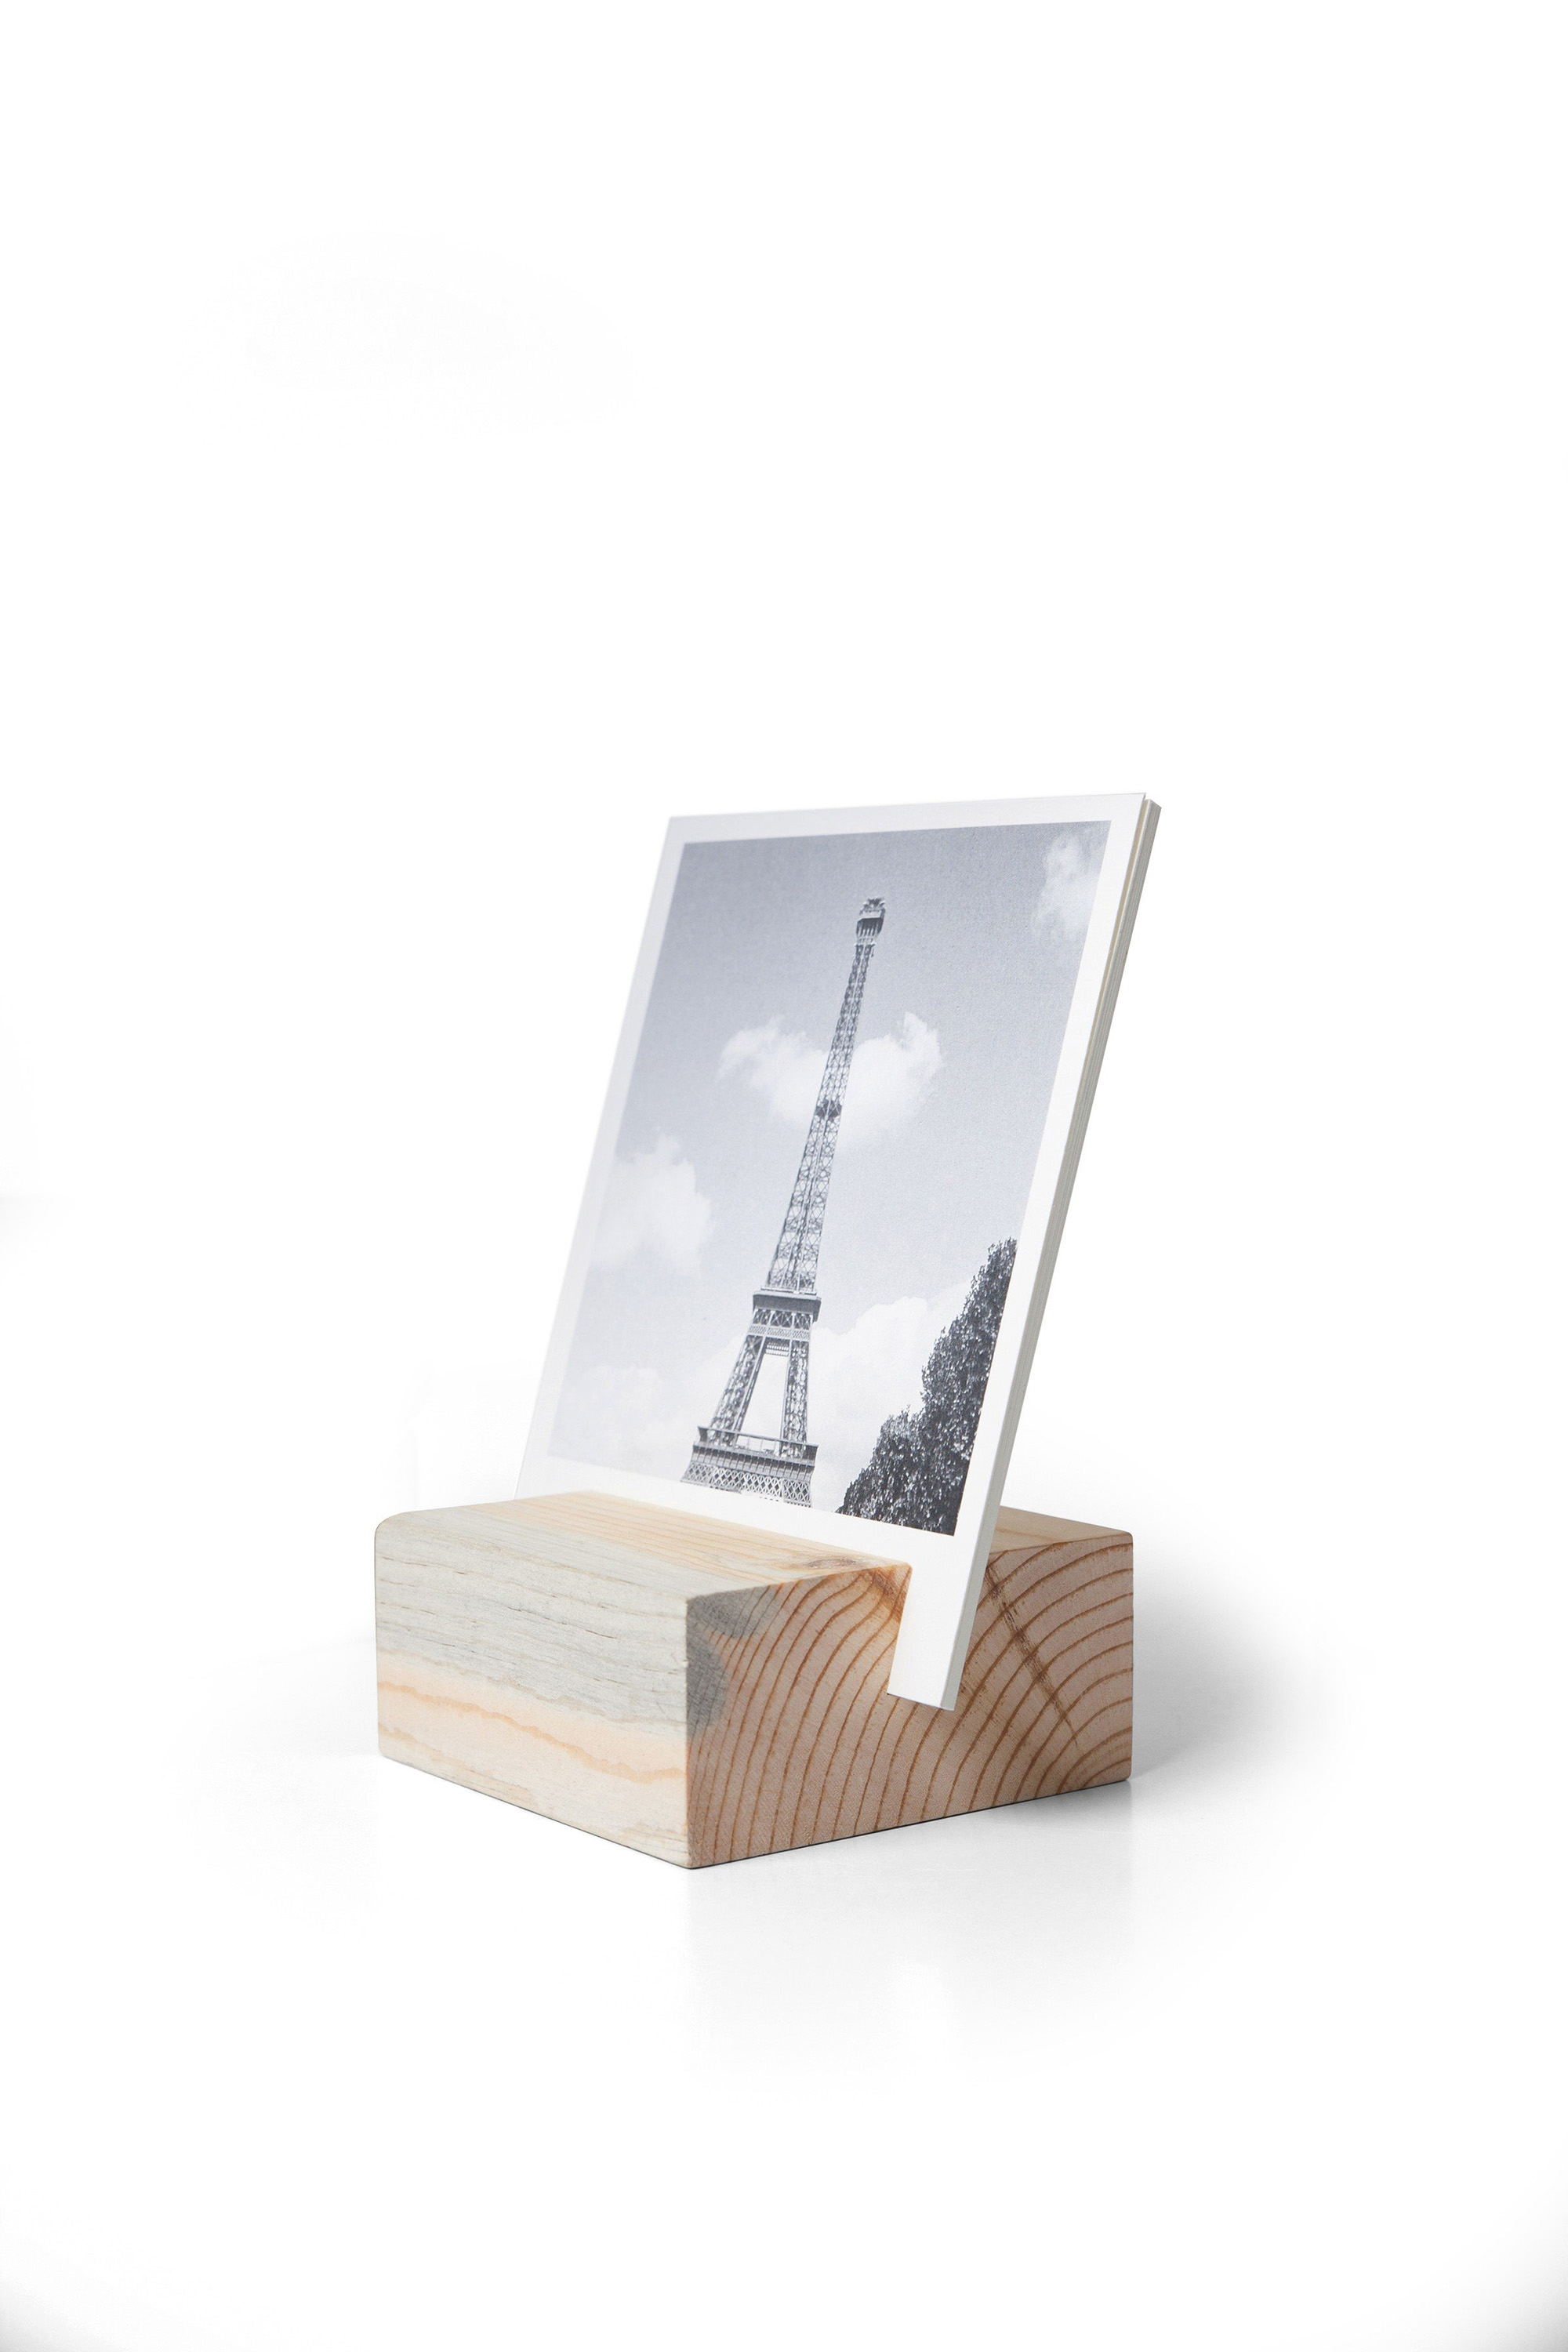 This sophisticated wood block was handcrafted in Colorado from mountain beetle pine reclaimed from fallen wastewood in the forests. Creating a rotating display of 12 textured paper prints in the block. $23.99 at artifactuprising.com. (artifactuprising.com/Chicago Tribune/TNS)